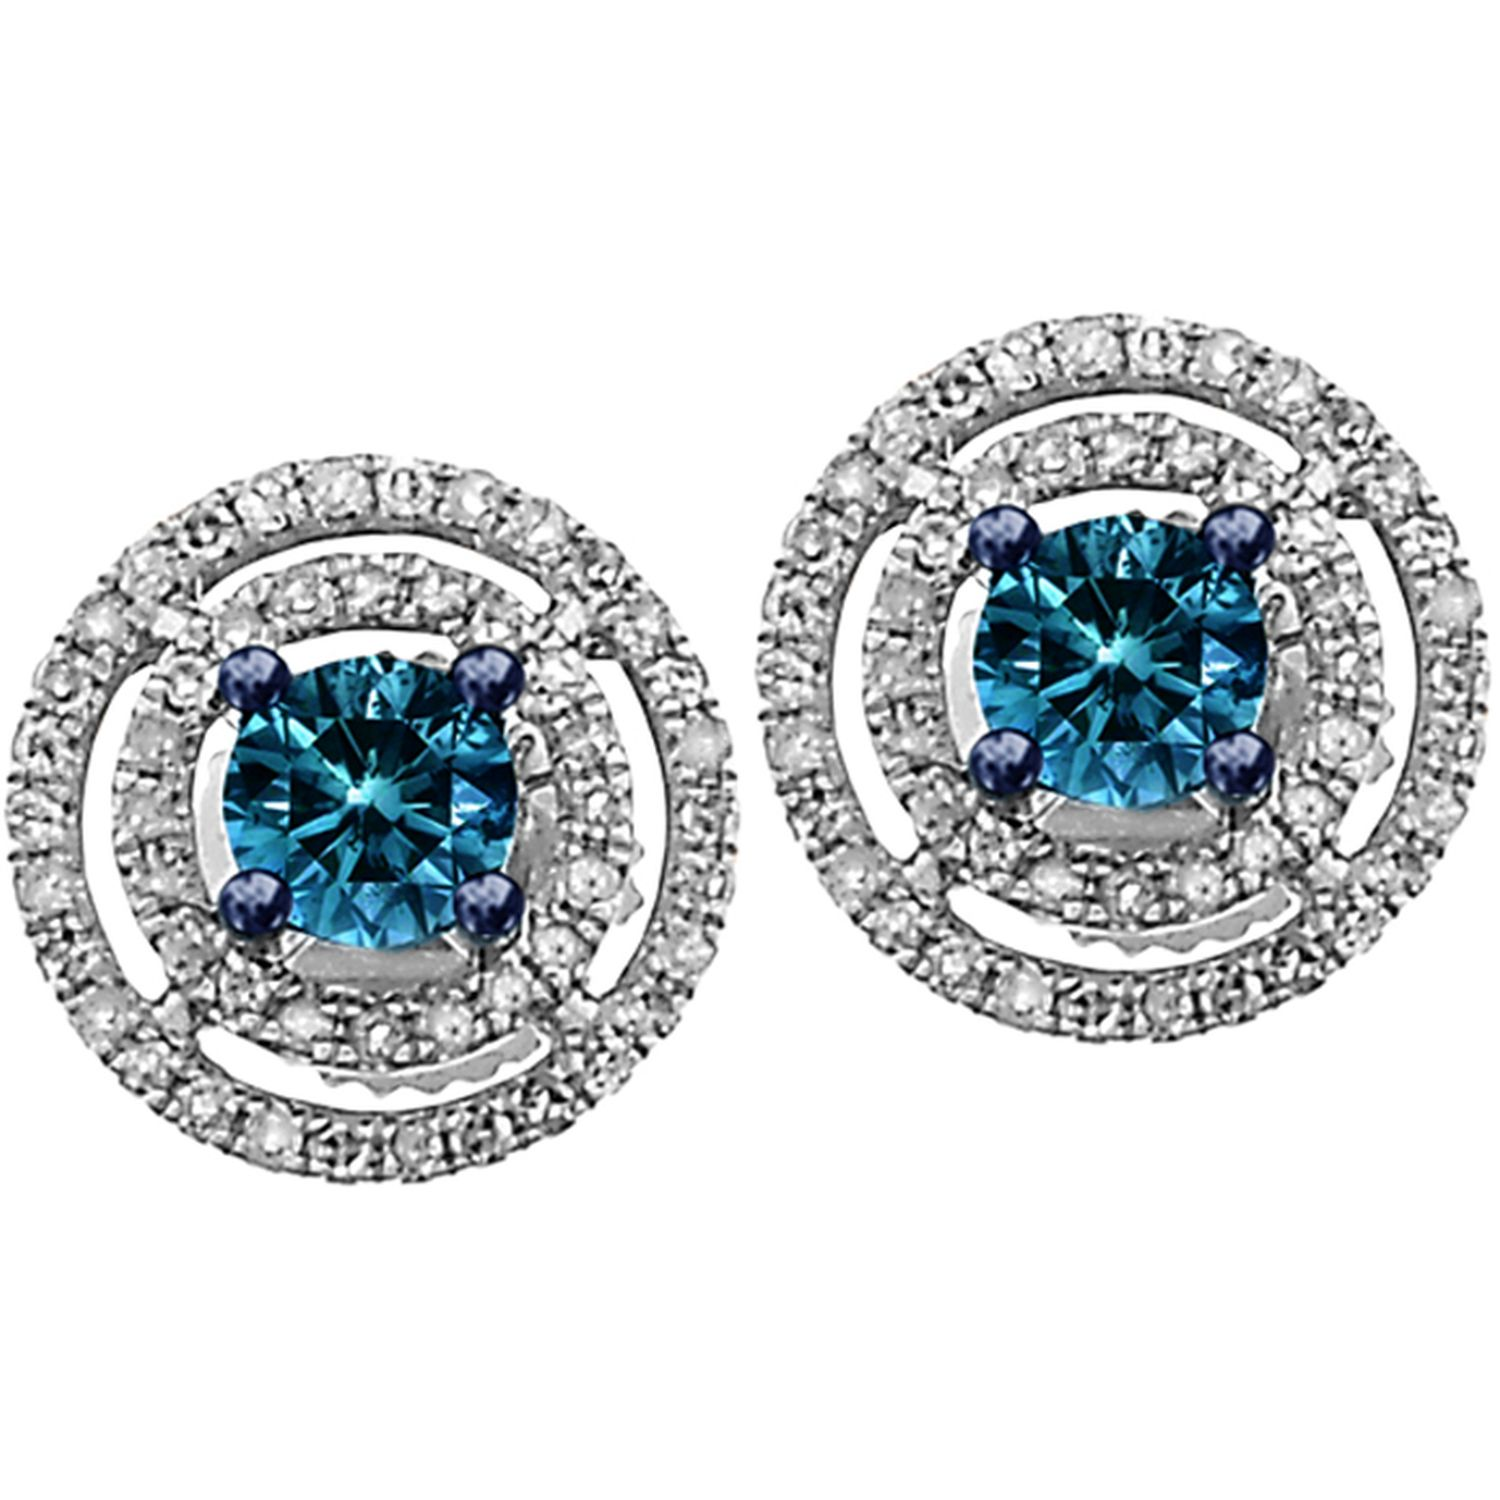 14K WG 1/2 ctw White/Blue Diamond Post Earrings - 14K WG 1/2 ctw Wht/Blue Diamond Post Earrings